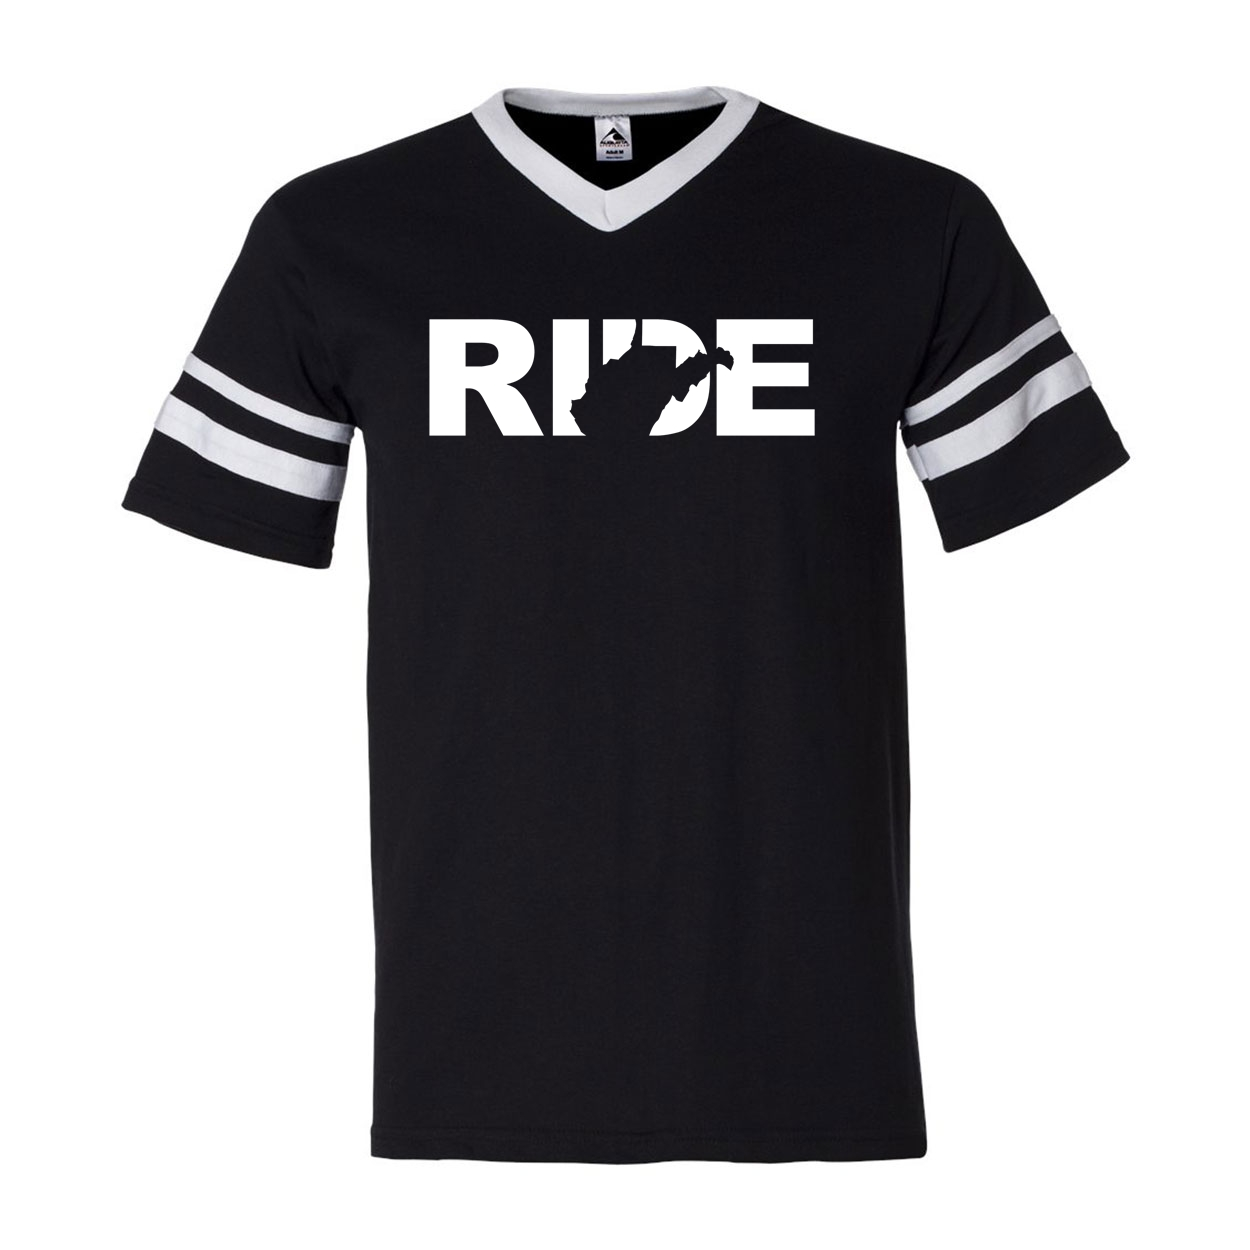 Ride West Virginia Classic Premium Striped Jersey T-Shirt Black/White (White Logo)